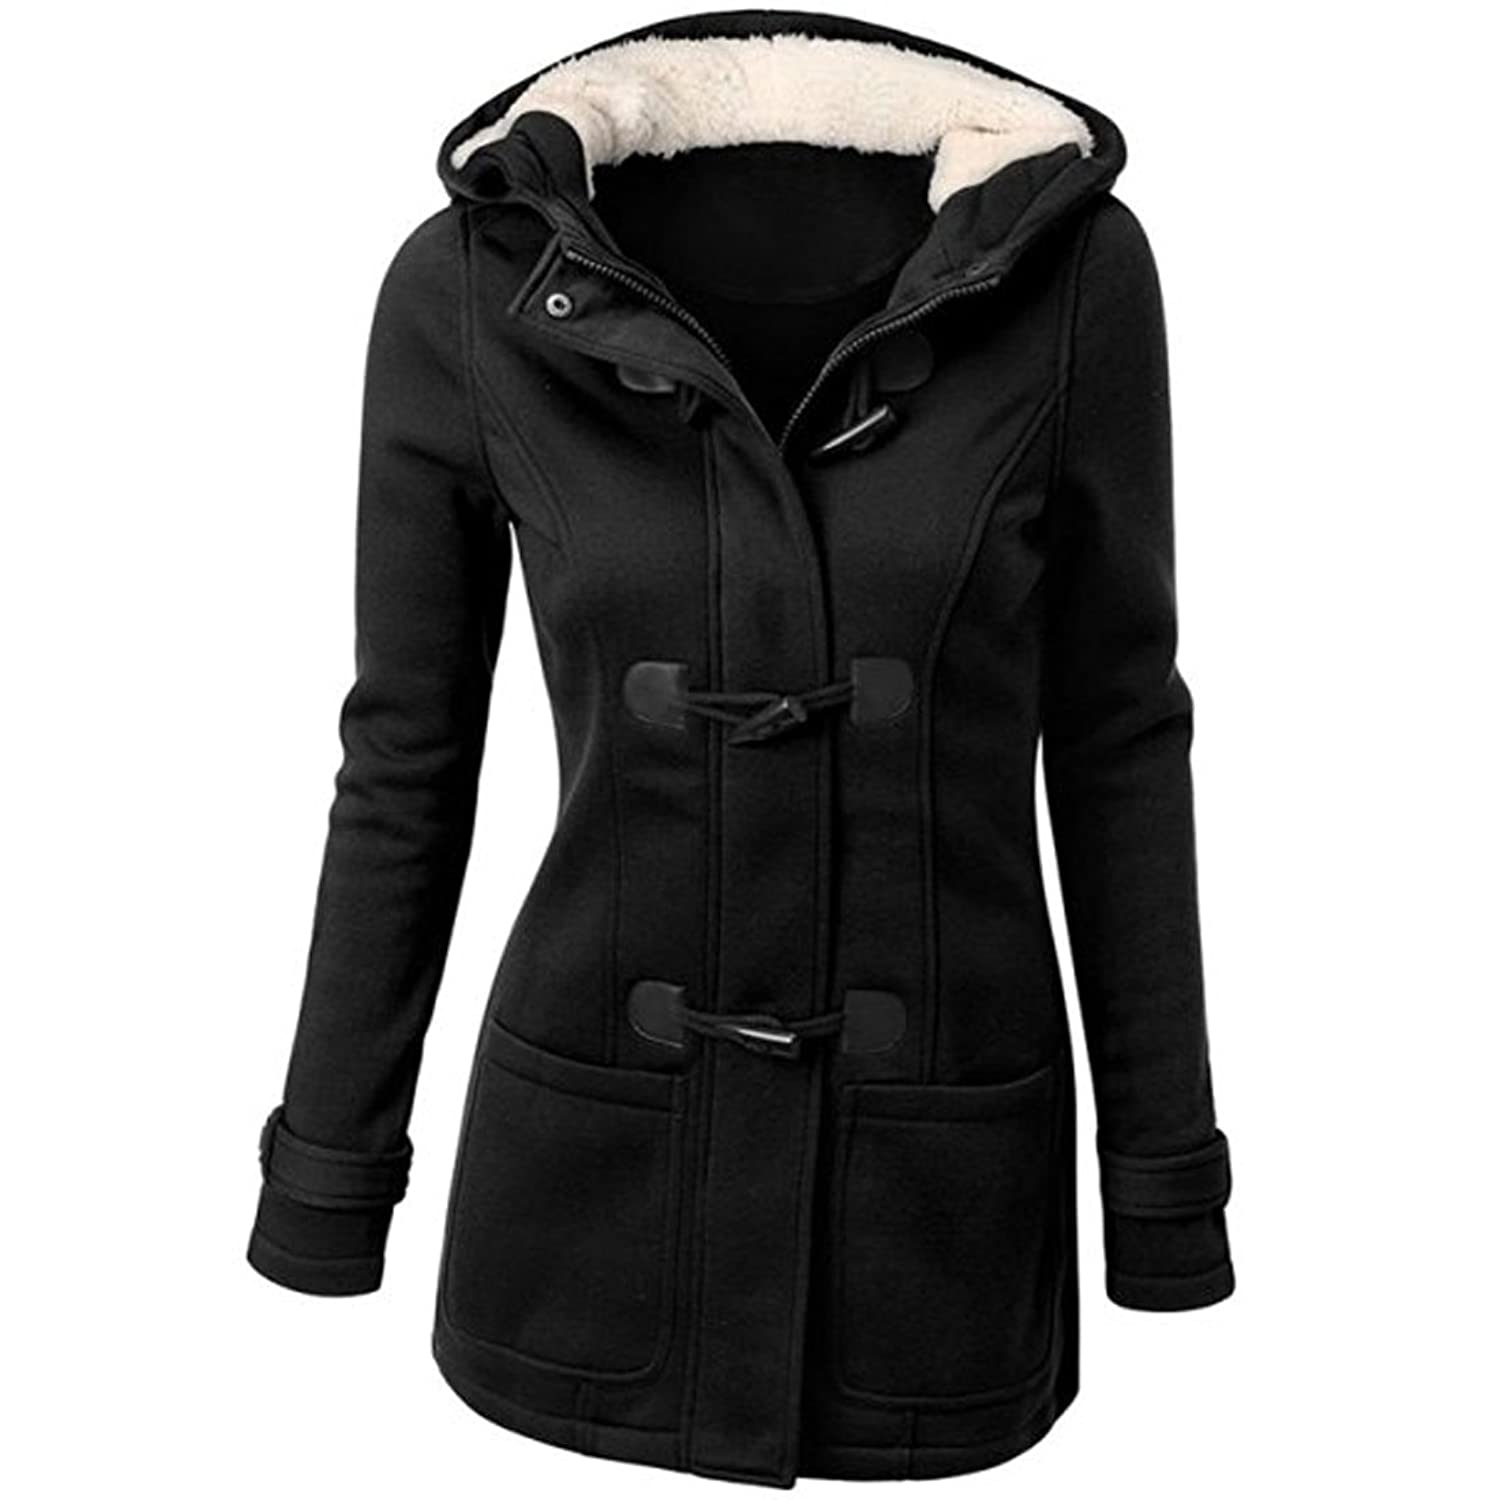 Women's Wool Pea Coats | Amazon.com